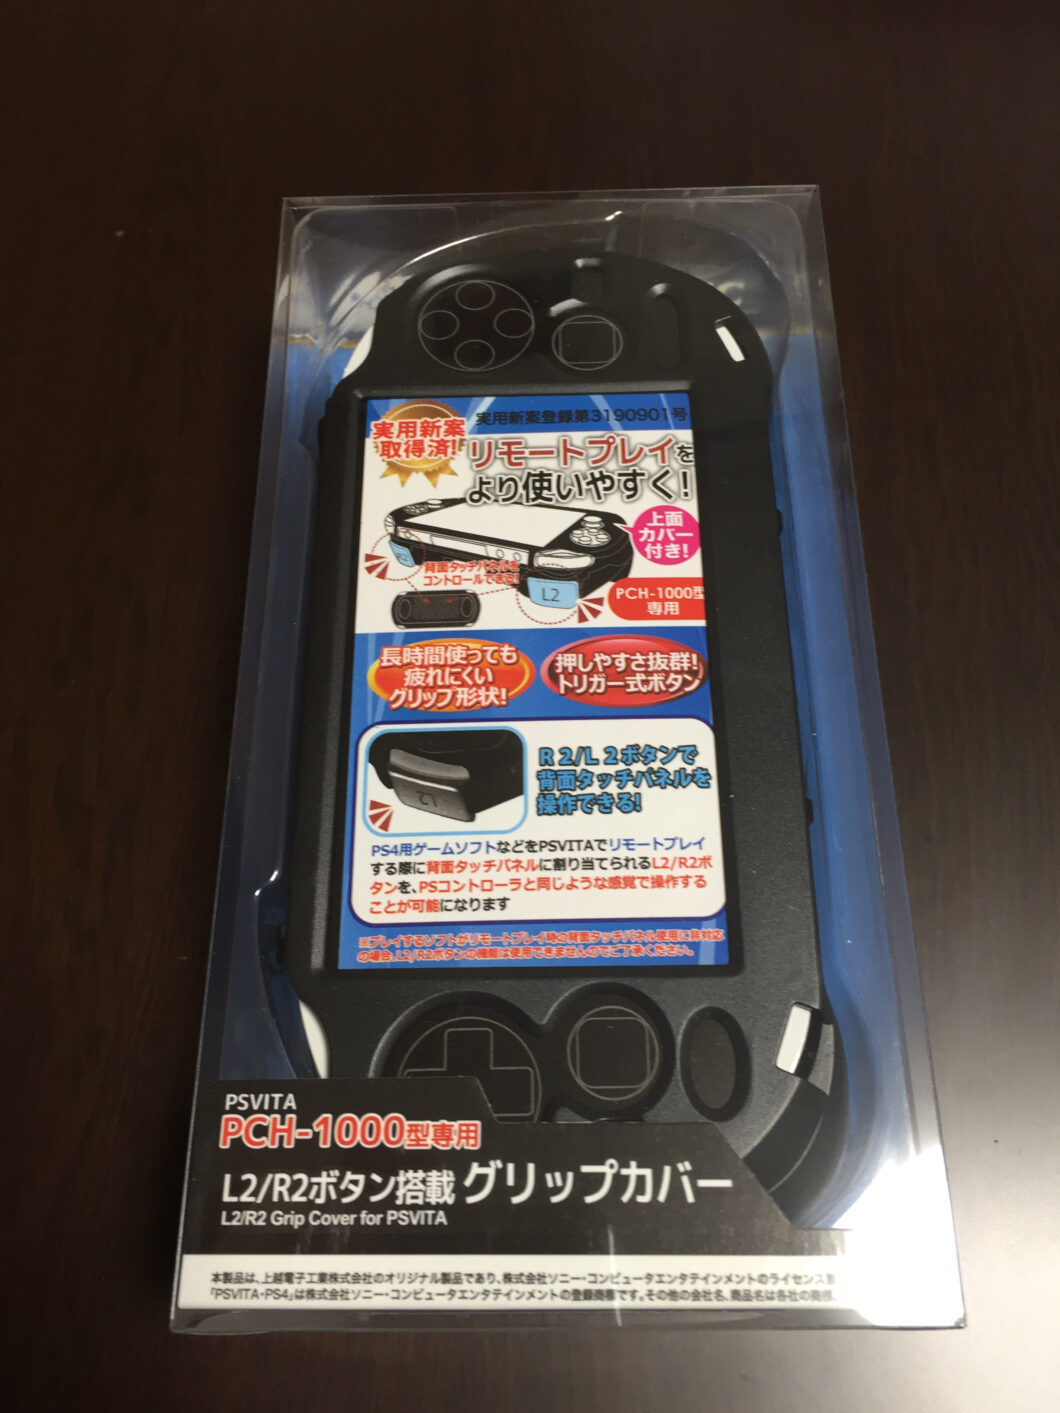 Case adding L2 and R3 button to PSvita package